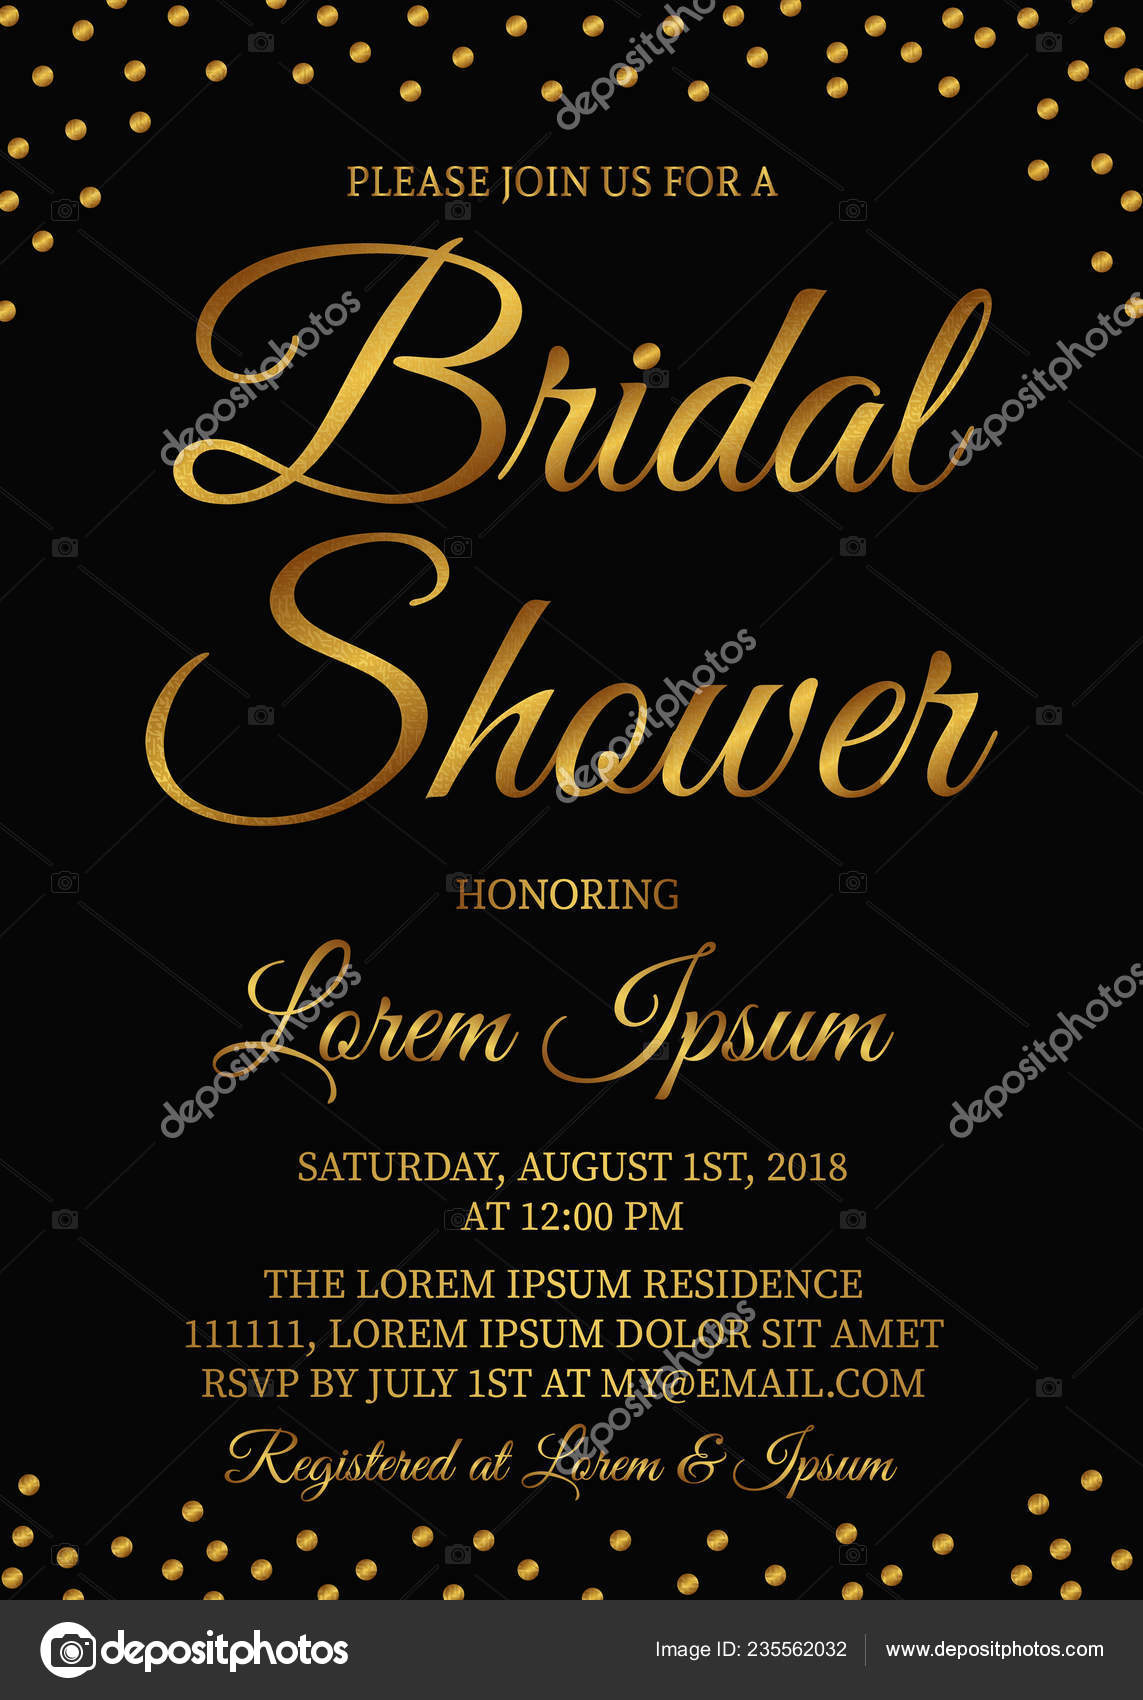 Bridal Shower Invitation Card Gold Confetti Bachelorette